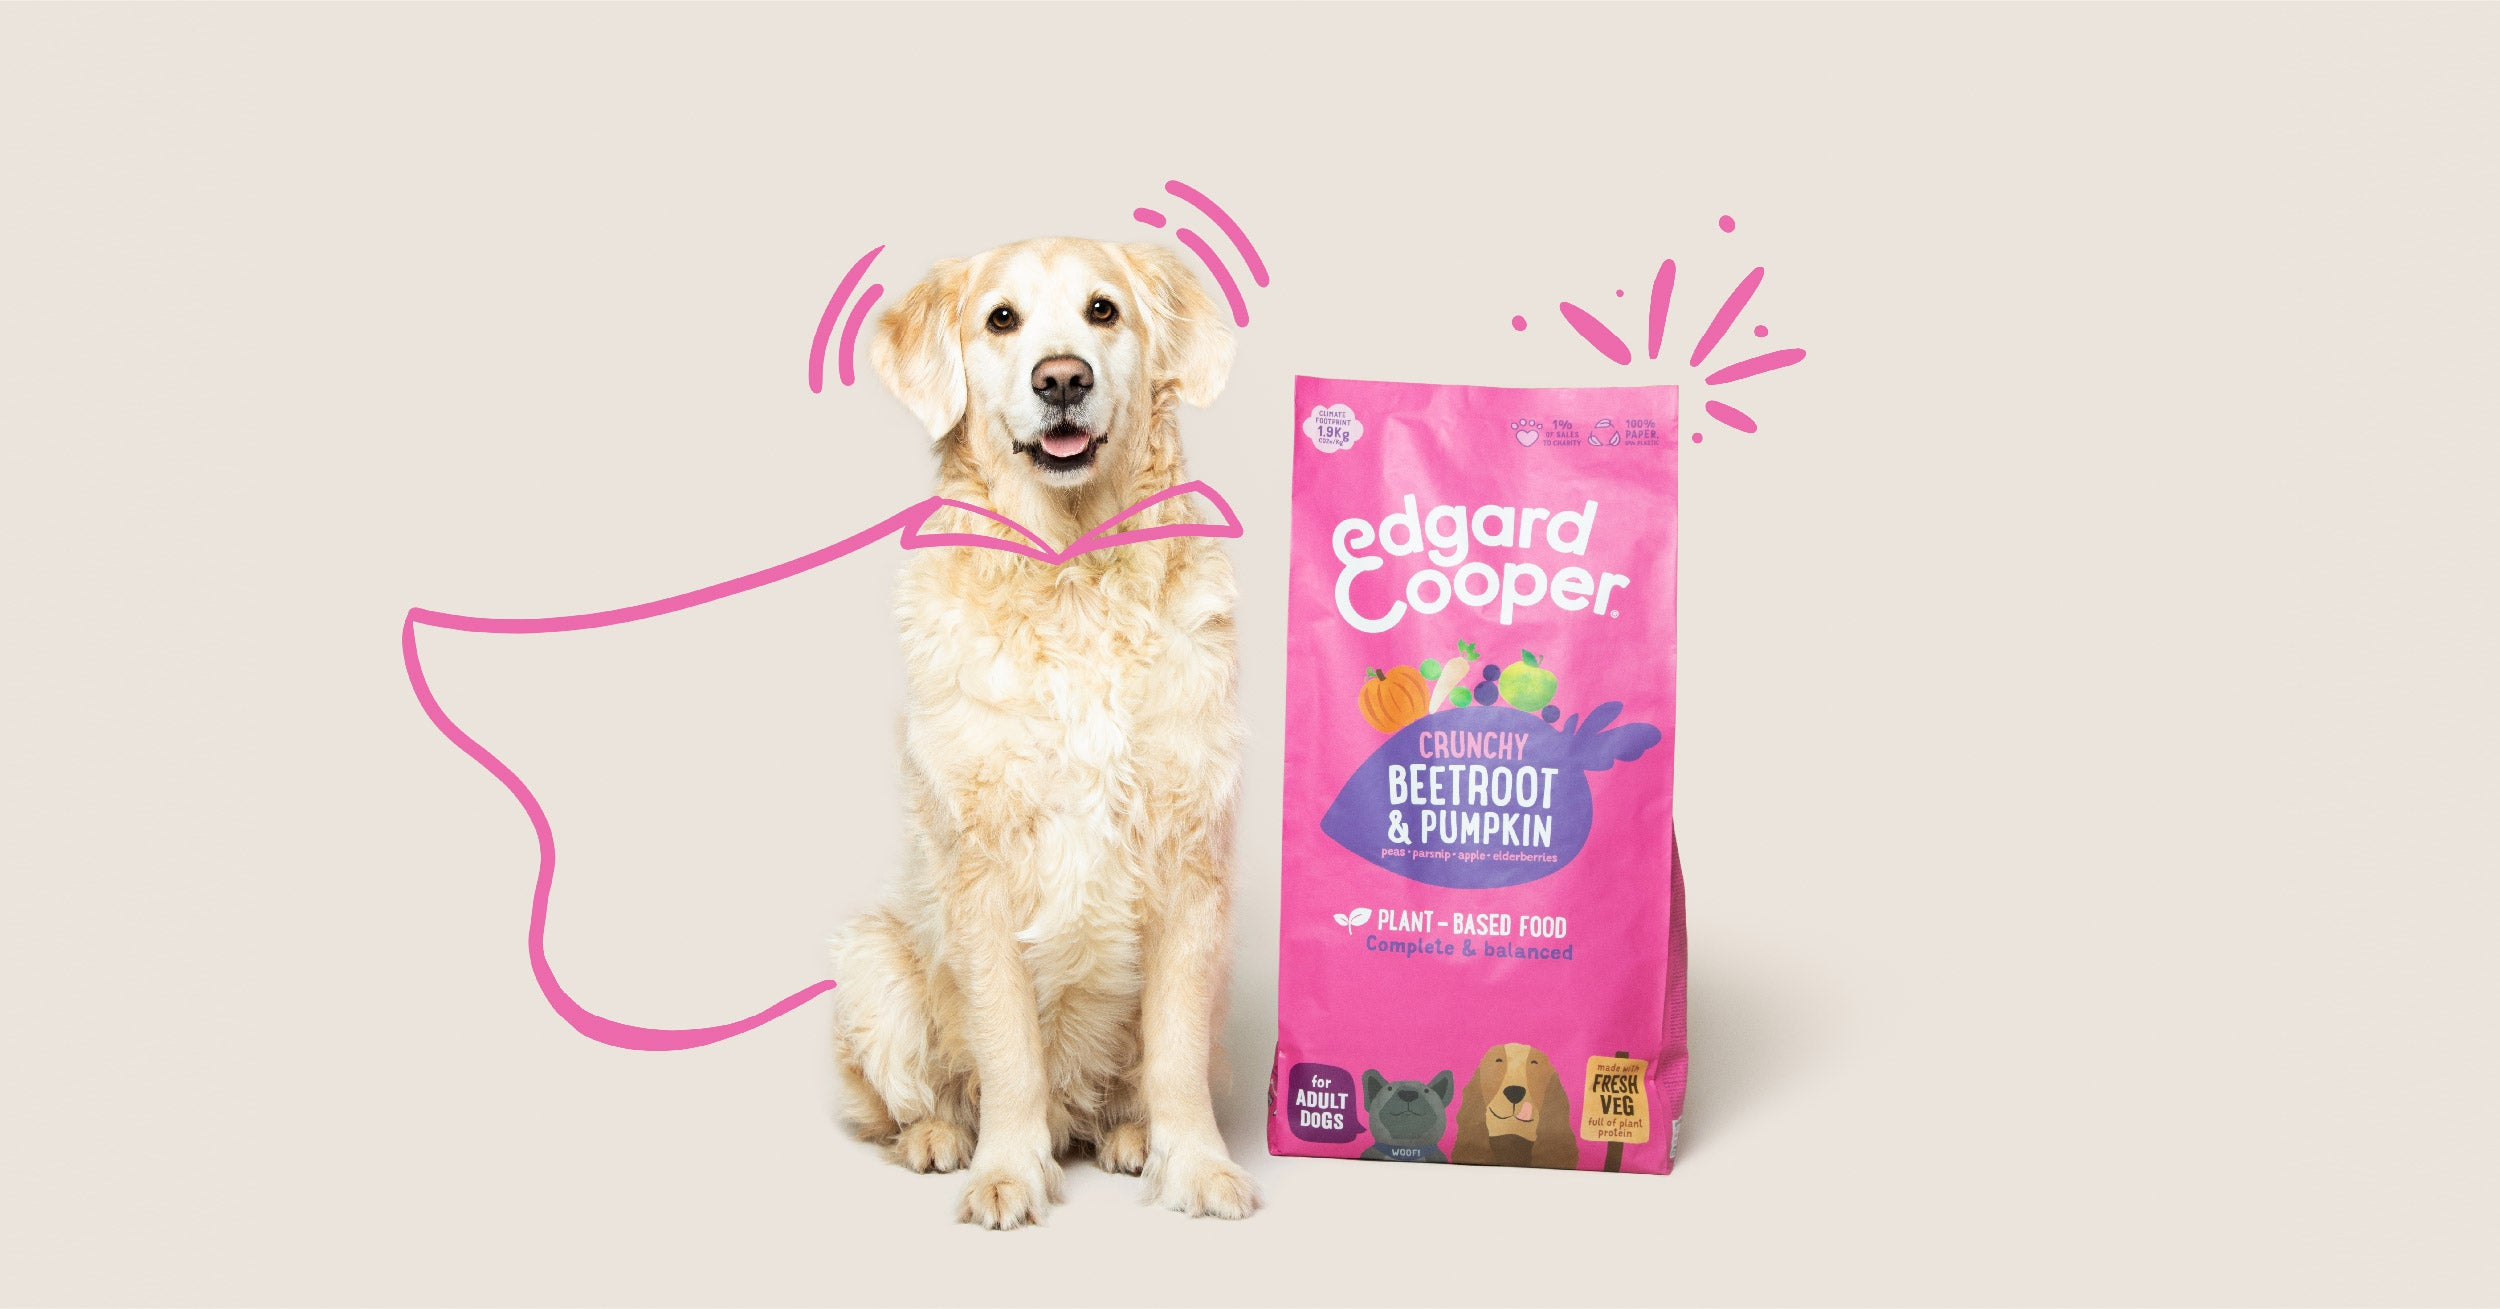 Picture of golden retriever sitting next to Edgard & Cooper plant-based kibble bag